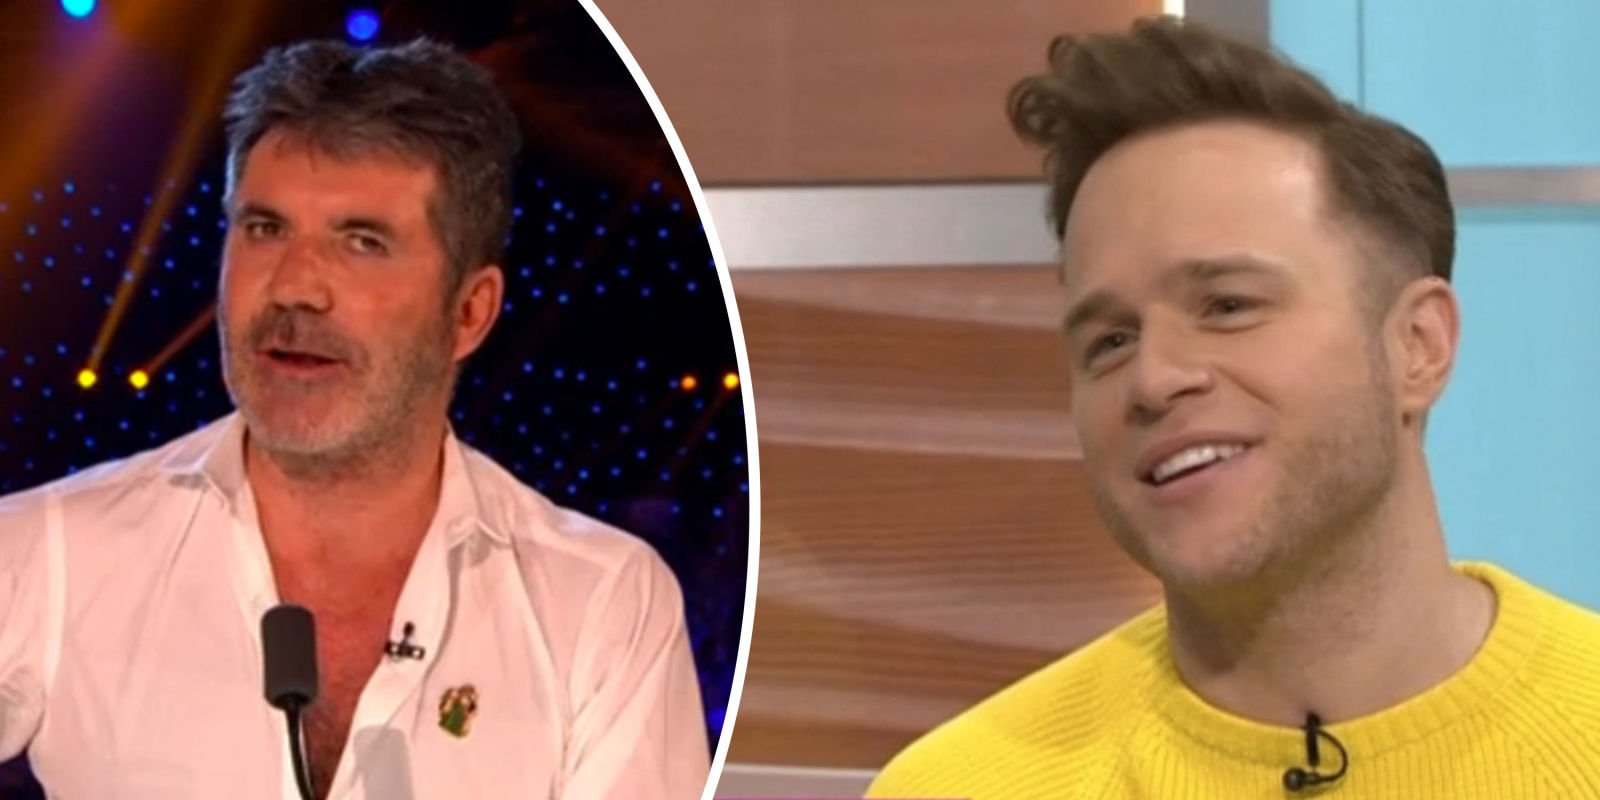 Olly Murs discusses his relationship with Simon Cowell and The X Factor after joining The Voice UK